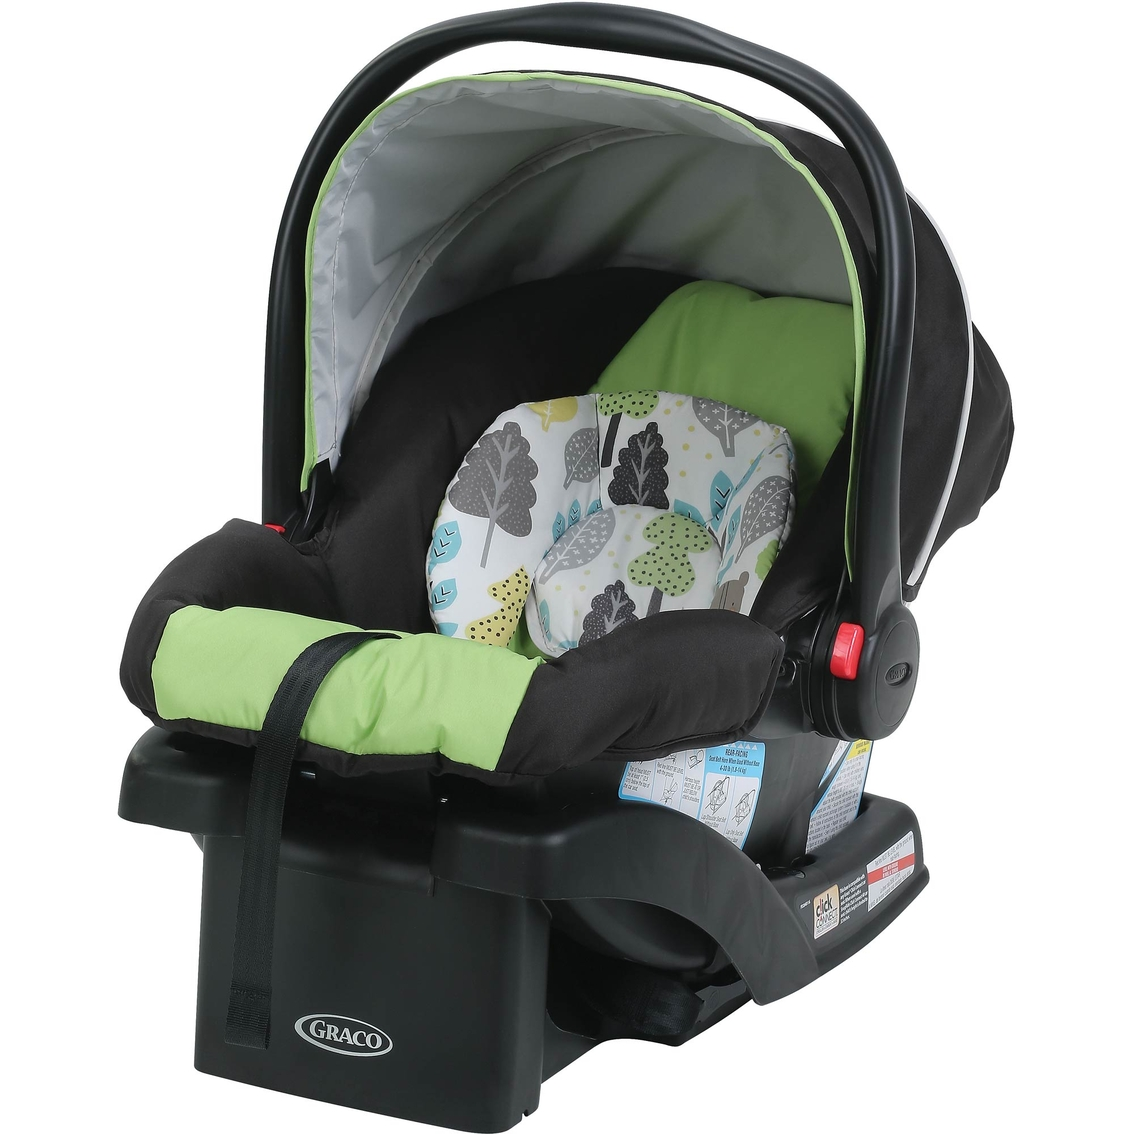 Hairy Graco Snugride Click Connect Infant Car Seat Graco Snugride Click Connect Infant Car Seat Infant Seats Graco Click Connect Car Seat Assembly Graco Click Connect Car Seat Holt baby Graco Click Connect Car Seat